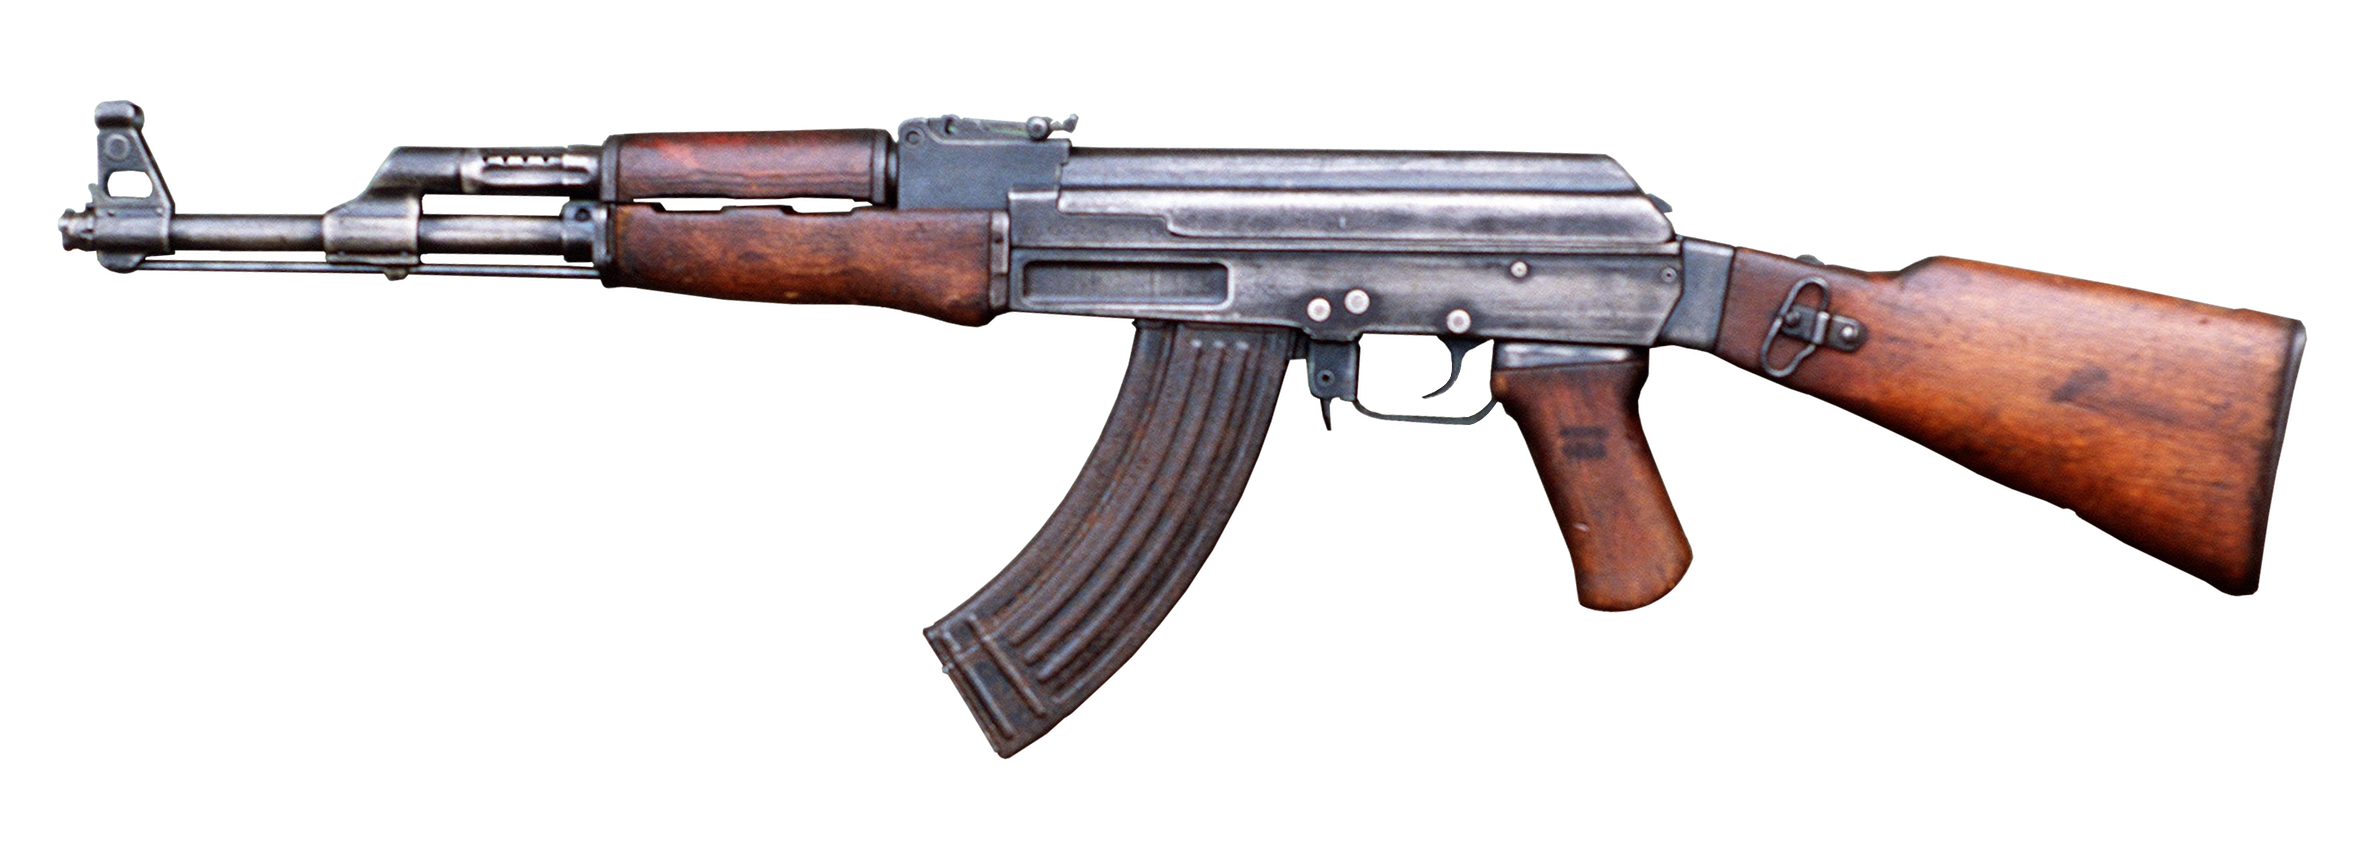 https://i1.wp.com/upload.wikimedia.org/wikipedia/commons/5/57/AK-47_type_II_Part_DM-ST-89-01131.jpg